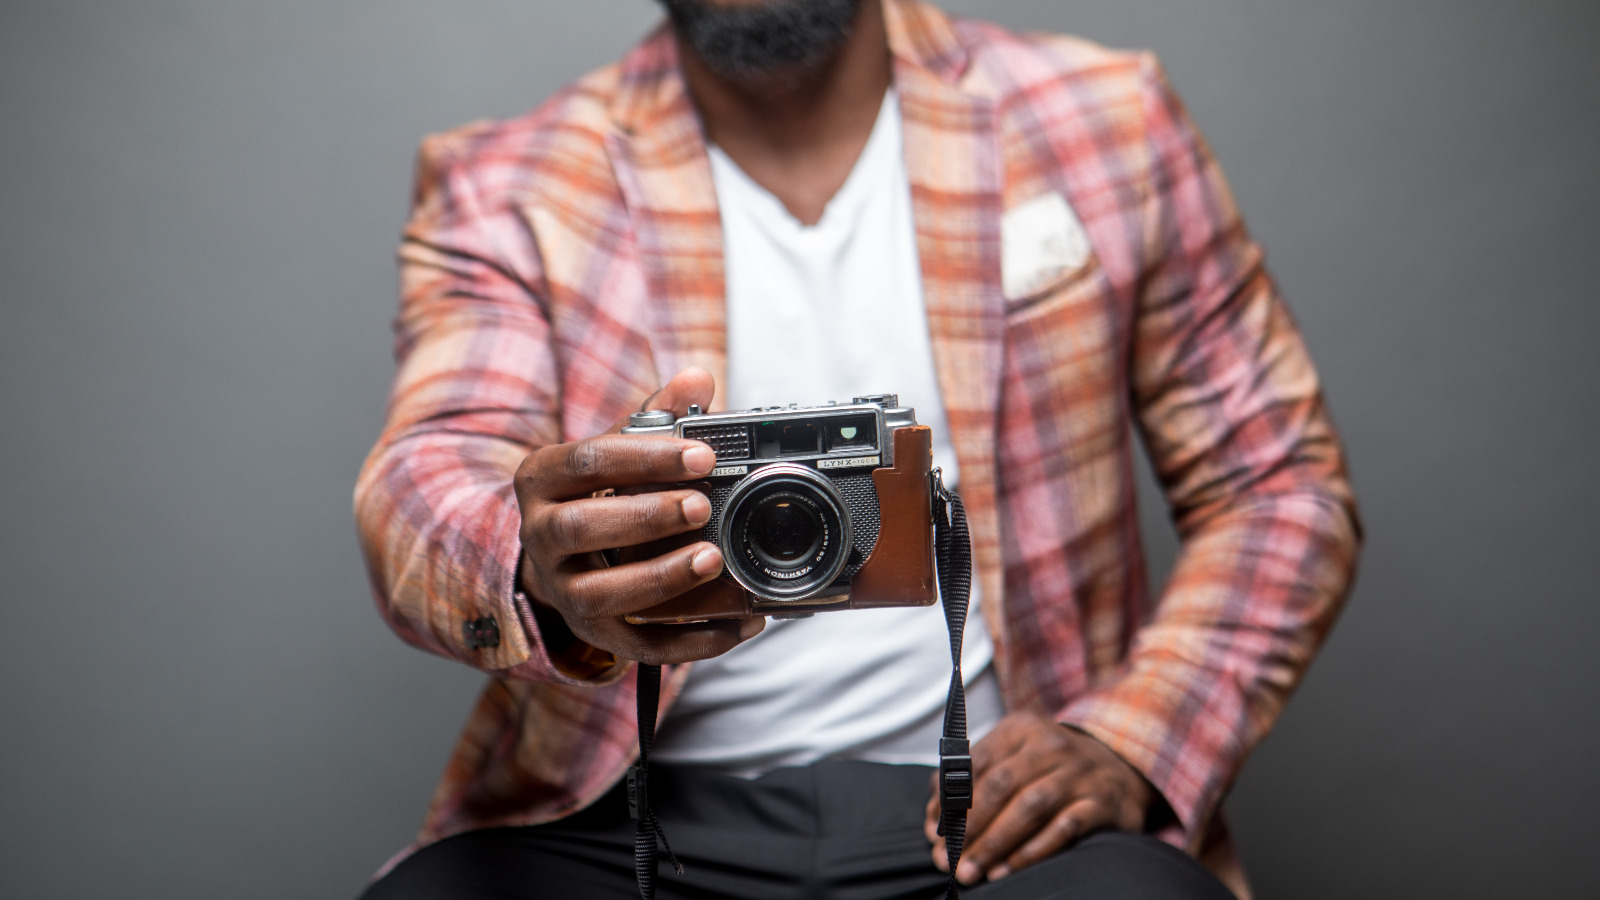 Man holding a camera.